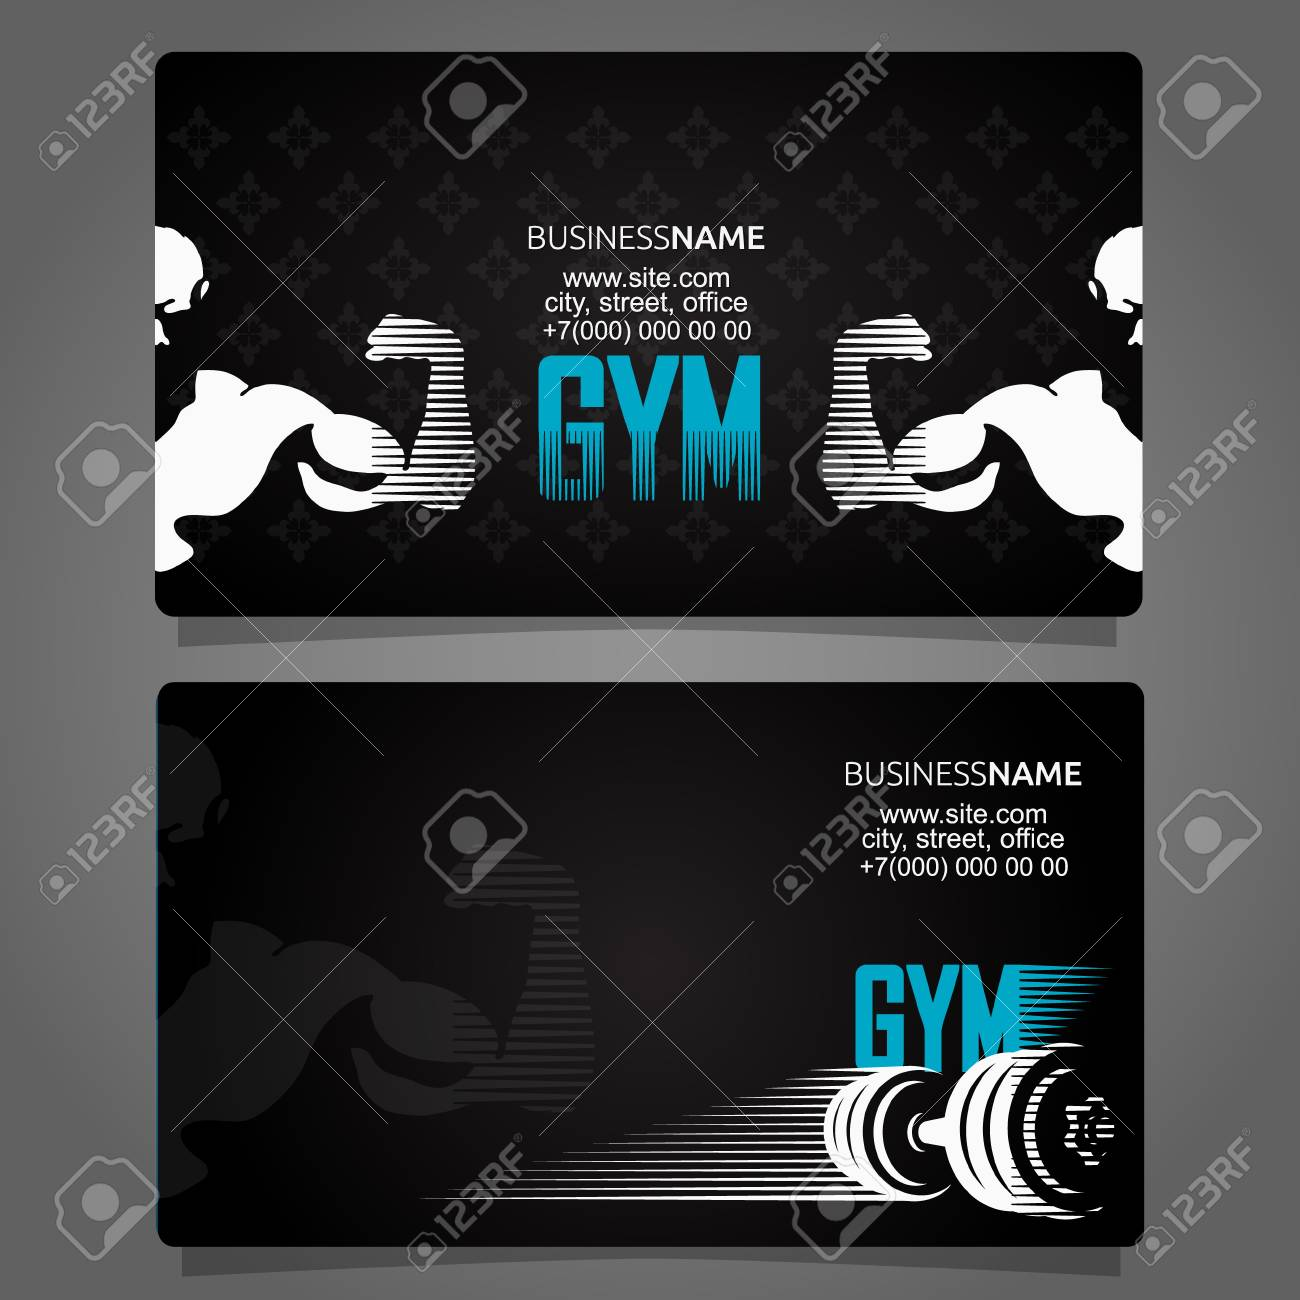 Fitness and gym business card unique concept - 105756844